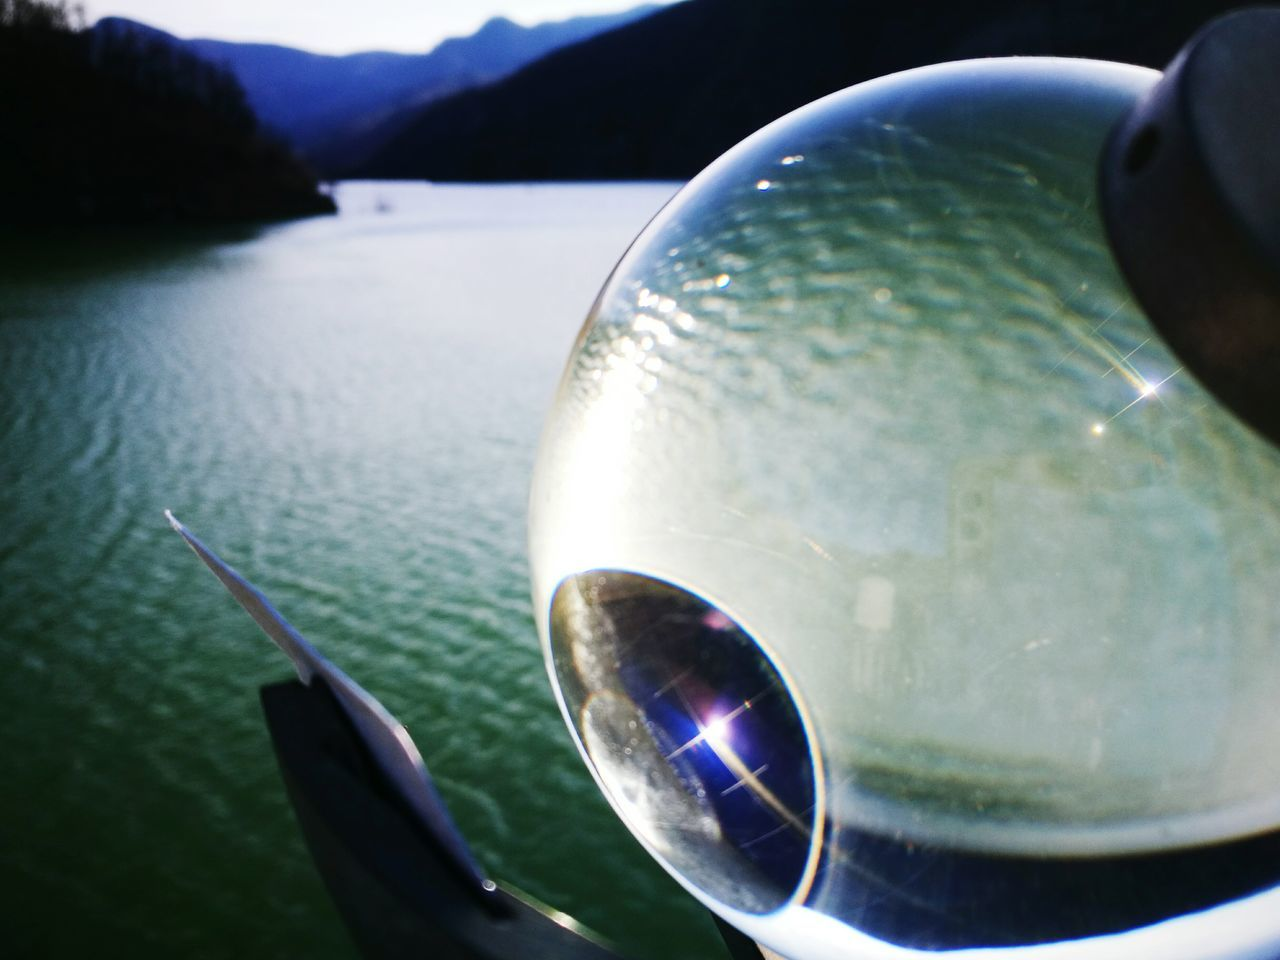 water, no people, close-up, reflection, crystal ball, outdoors, nature, day, beauty in nature, sky